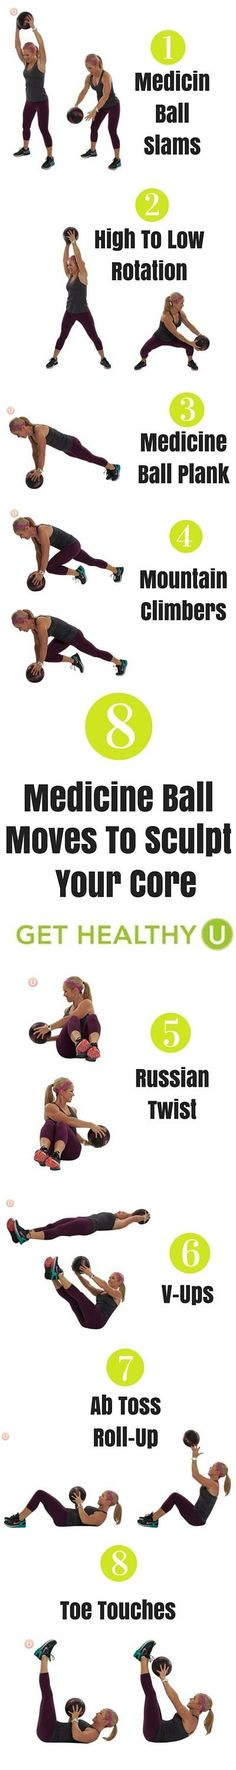 Get ready to slam, twist, plank, toss and rotate all to help strengthen and define that beautiful six-pack! This medicine ball workout is great on its own or tagged on to another cardio routine. Try these 8 moves to sculpt your core! diet workout back fat Fit Girl Motivation, Fitness Motivation, Hiit, Bola Medicinal, Fitness Tips, Health Fitness, Workout Fitness, Video Fitness, Post Workout